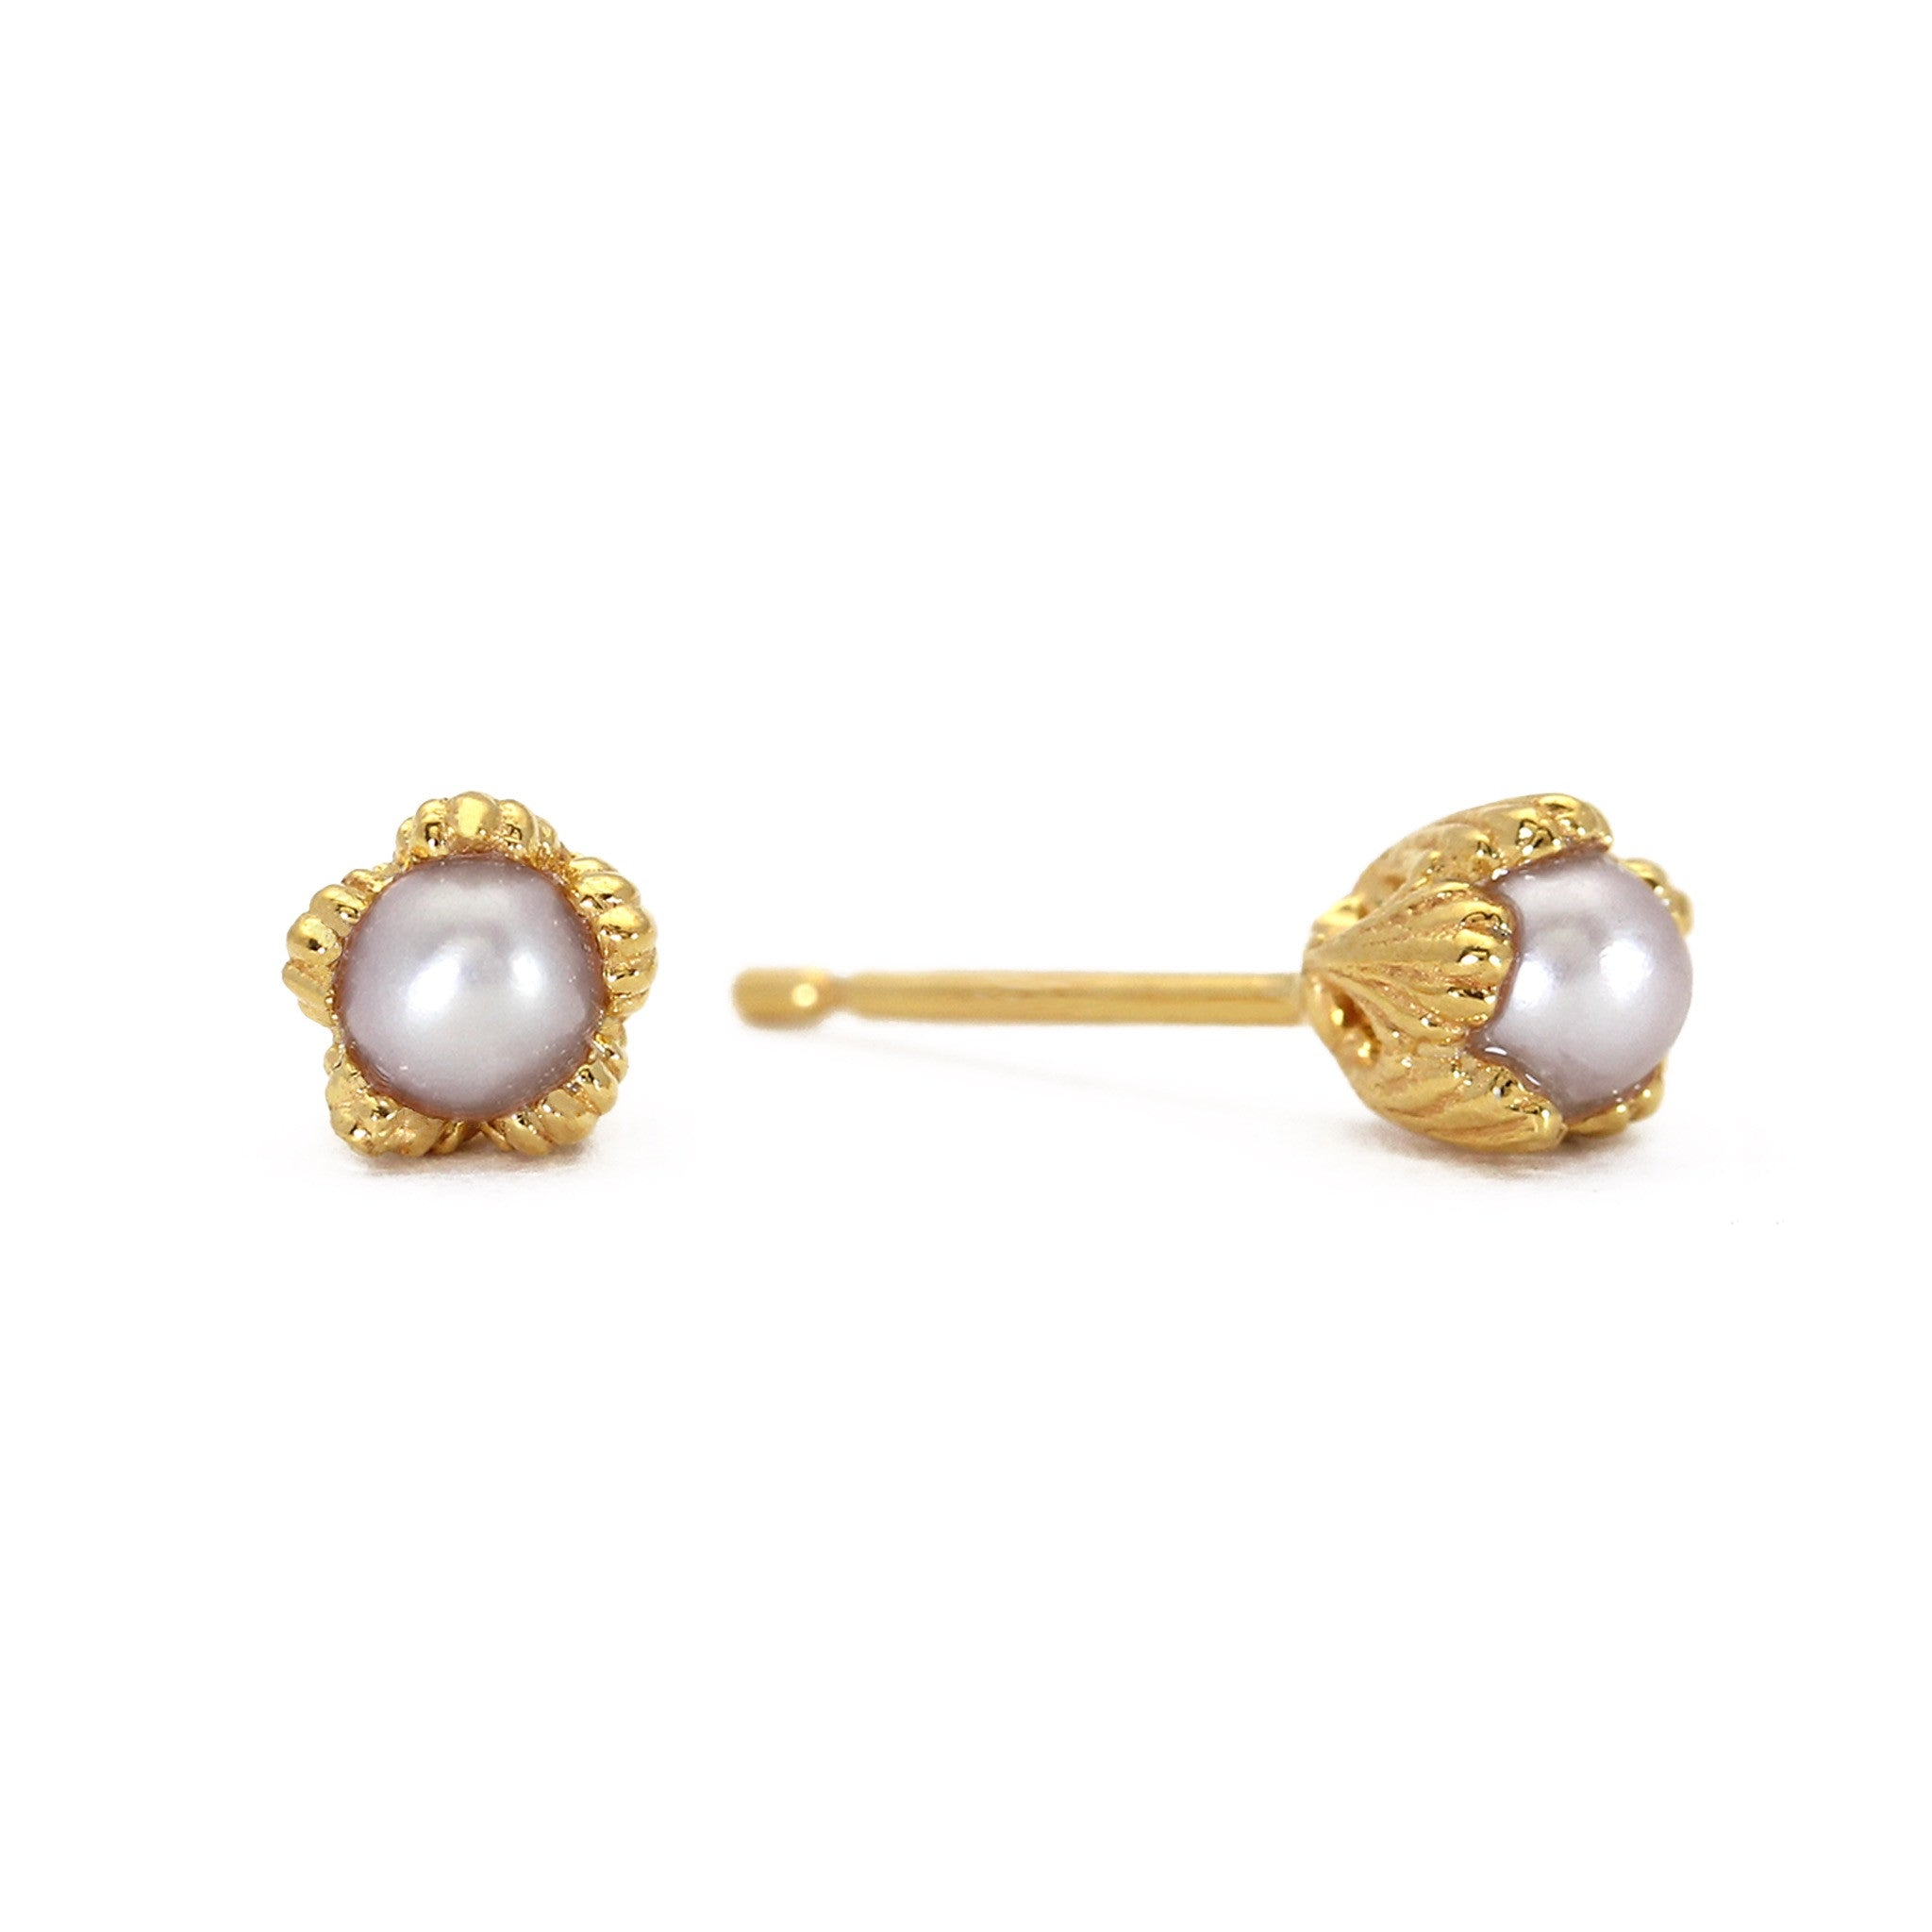 Villa Yellow Gold and Pearl Stud Earrings